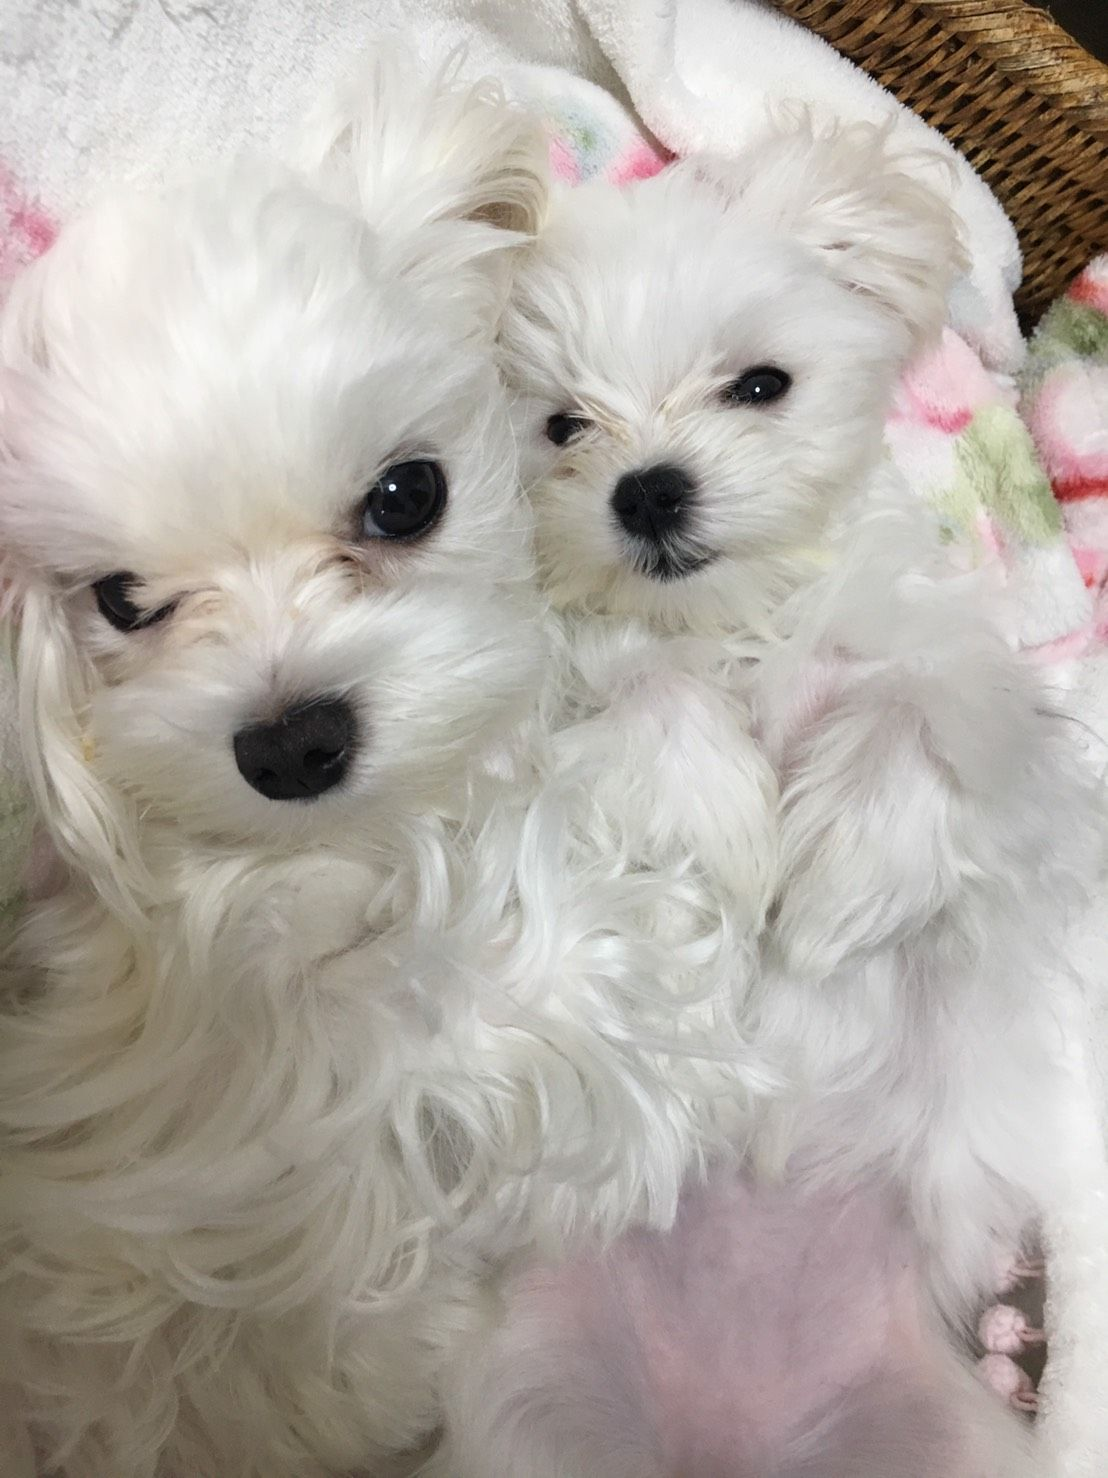 Seeet Teacup Puppies Maltese Cute Animal Photos Maltese Dogs